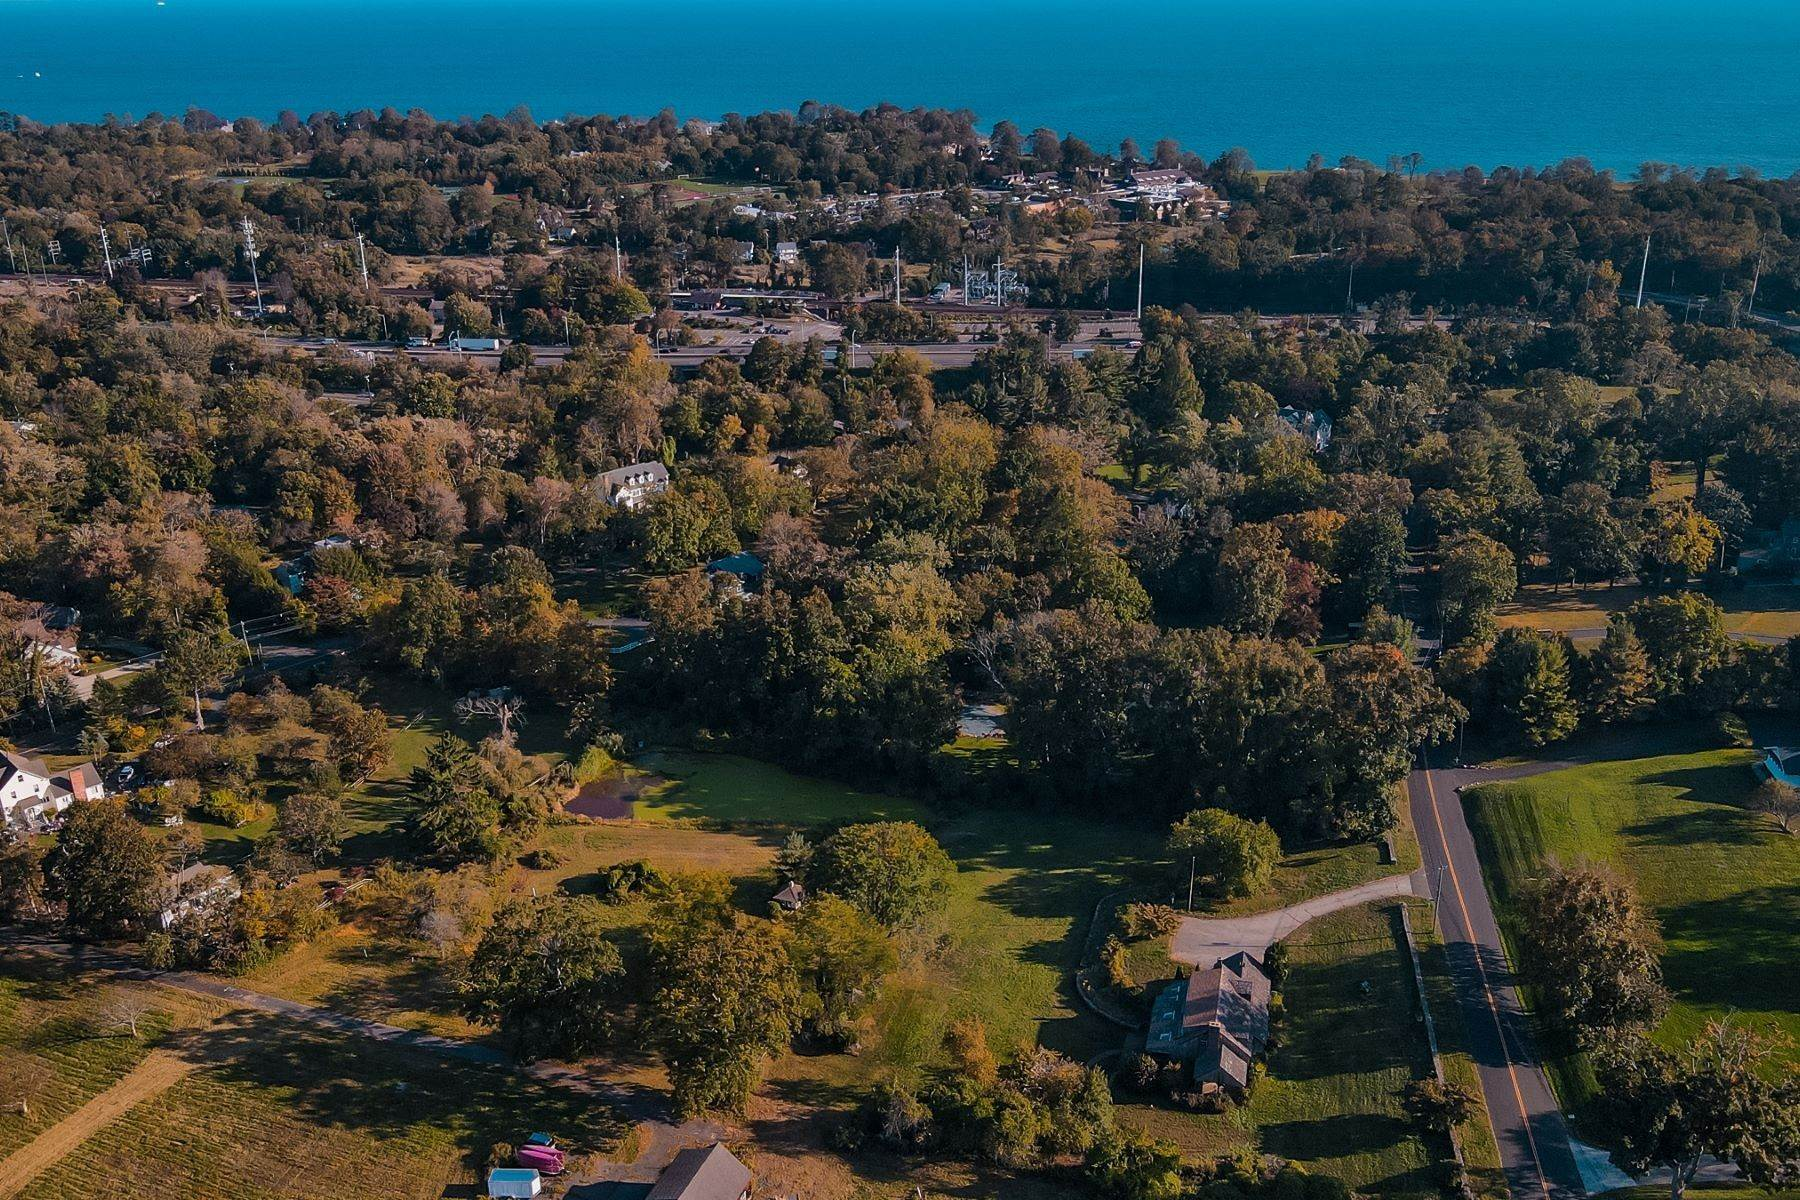 Đất đai vì Bán tại Prestigious Two Acre Land Property 117 Morningside Drive South, Westport, Connecticut 06880 Hoa Kỳ